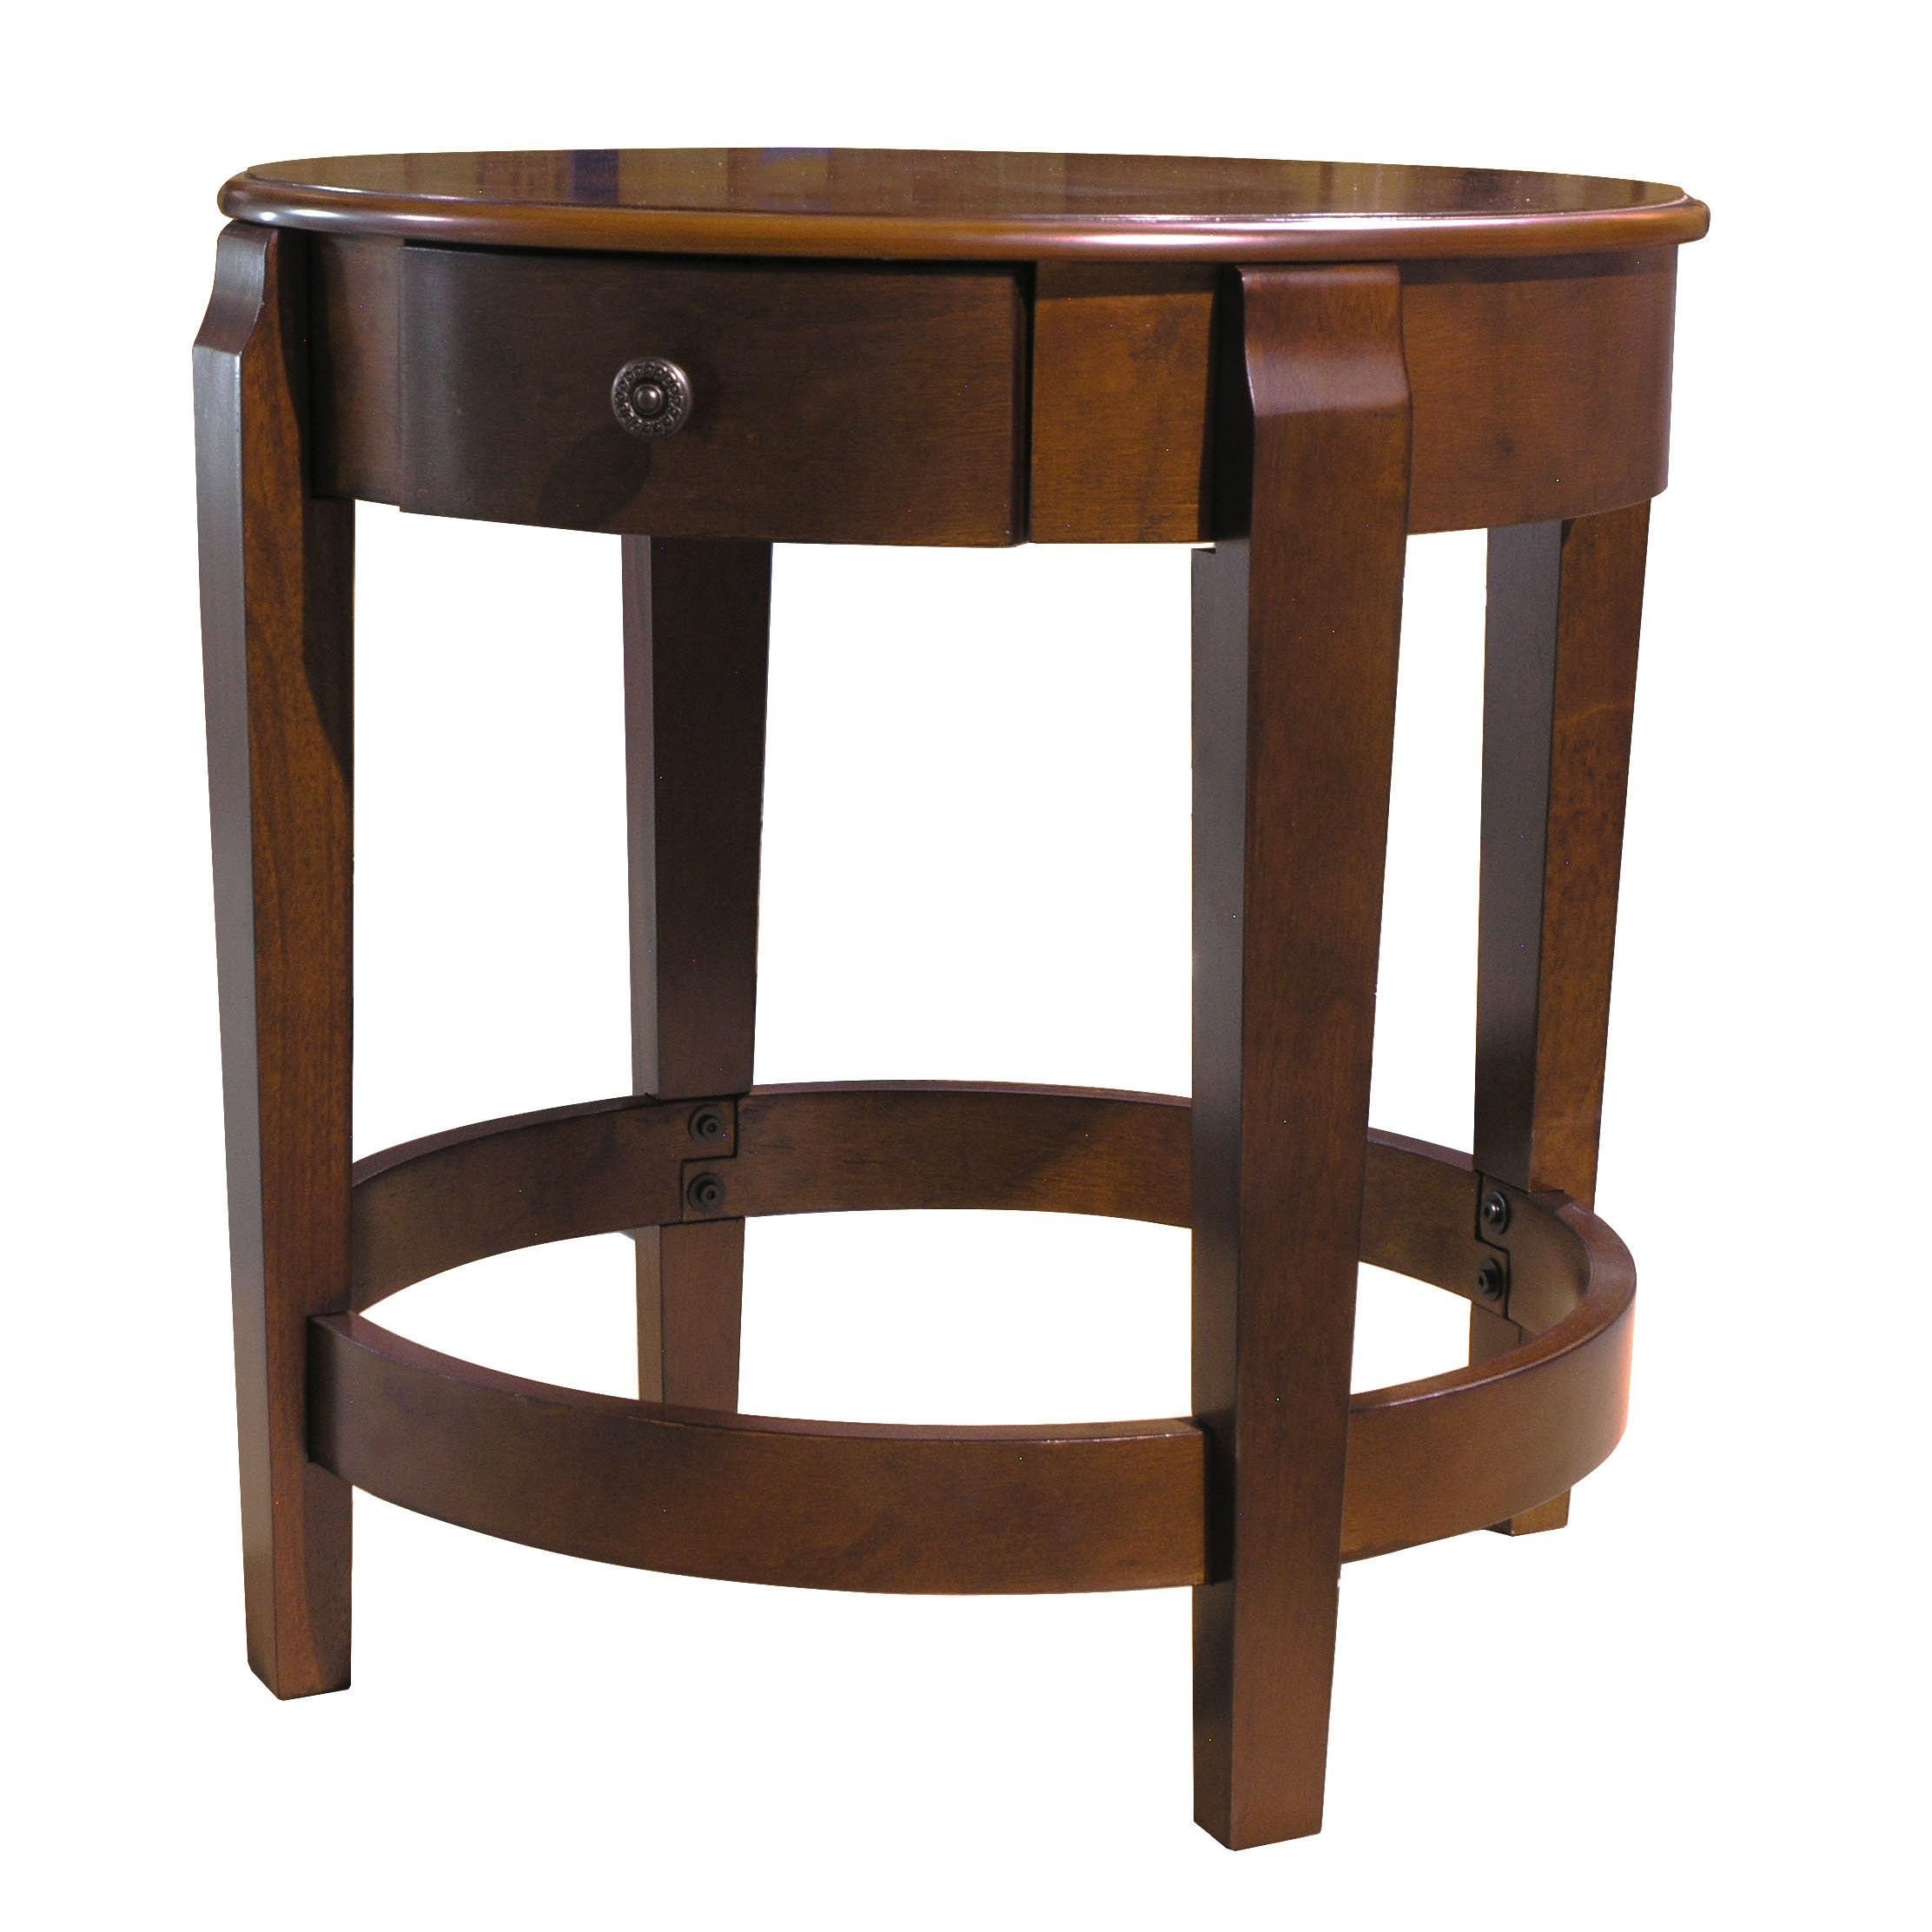 Round Accent Table with Concealed Drawer